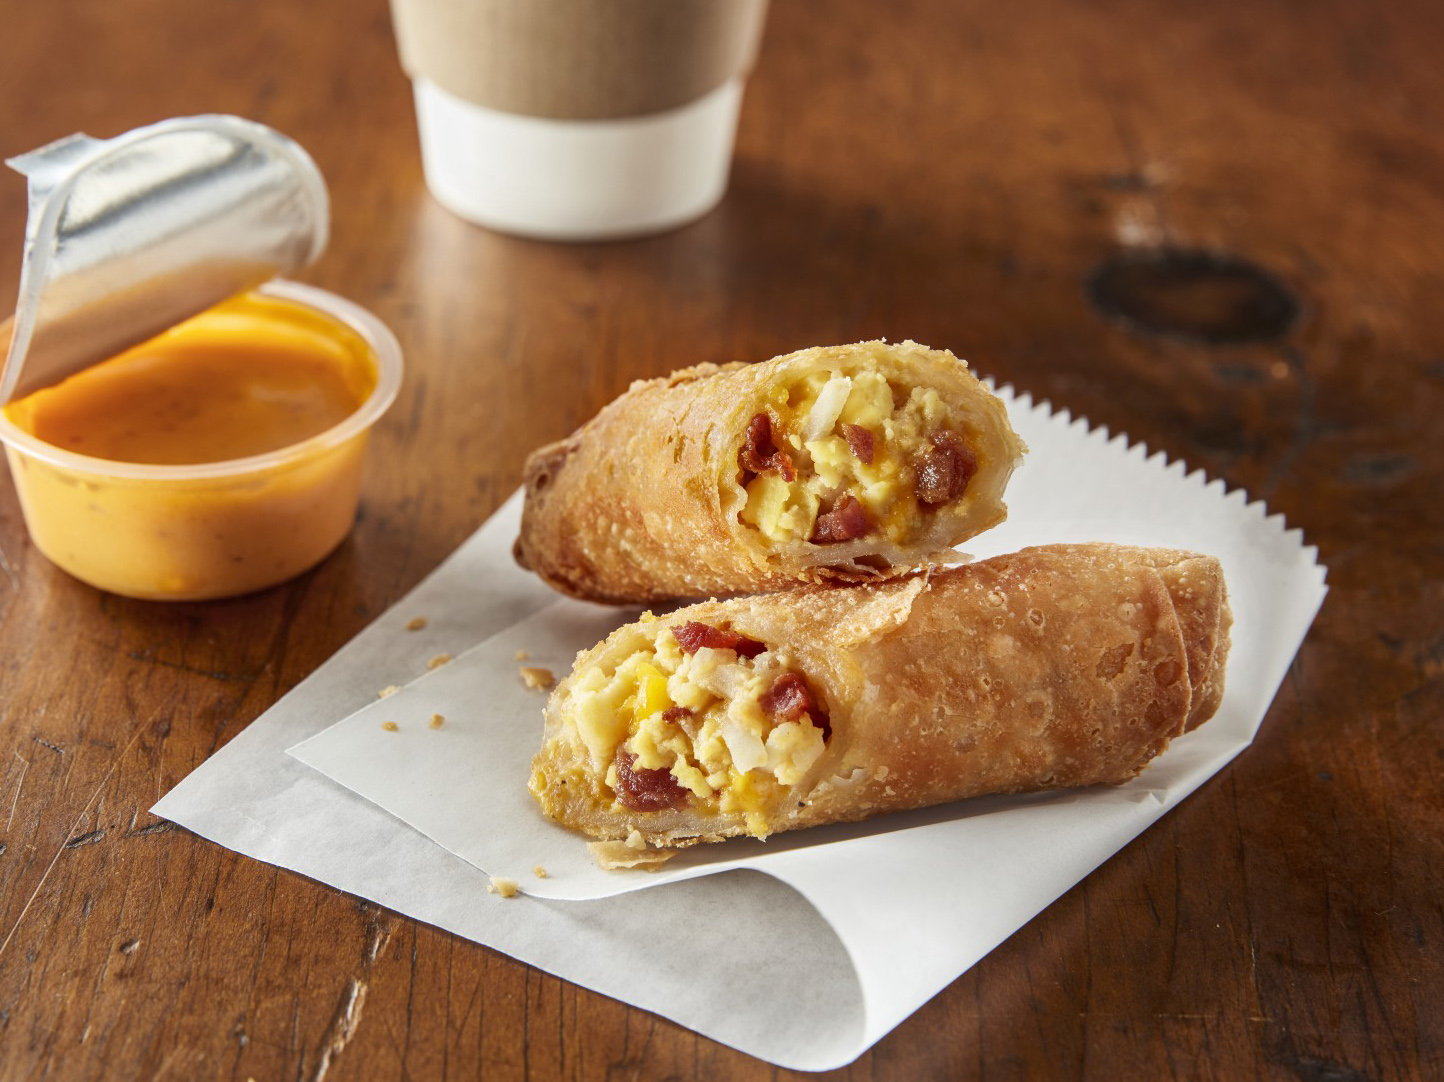 minh_3_oz_bacon_egg_and_cheese_breakfast_rollers-69540